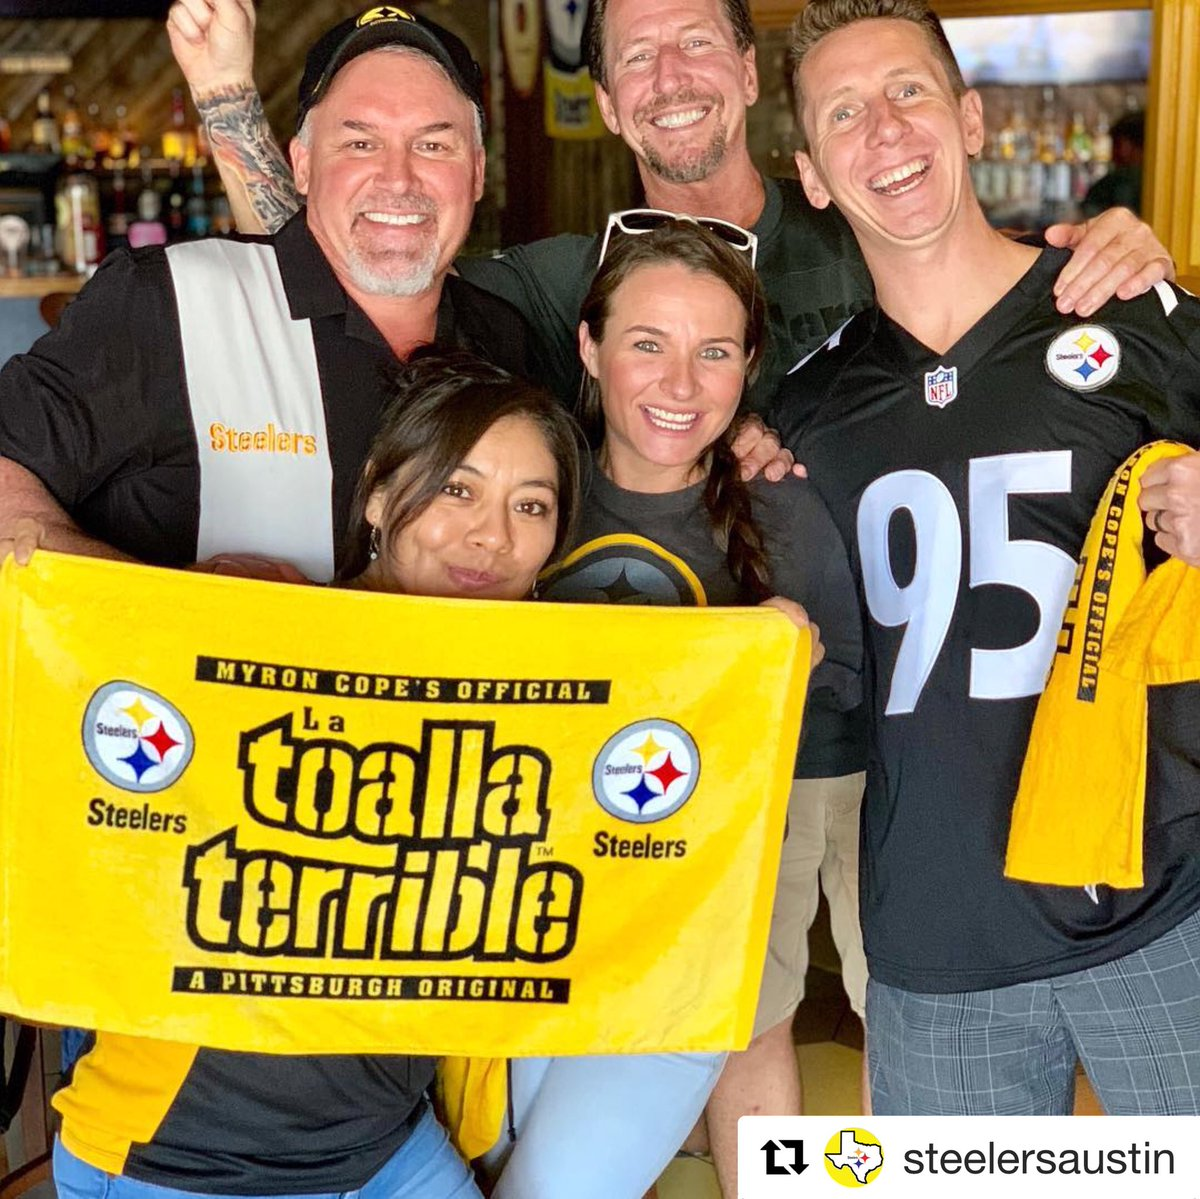 Have a great weekend, #SteelersNation! #FanFriday